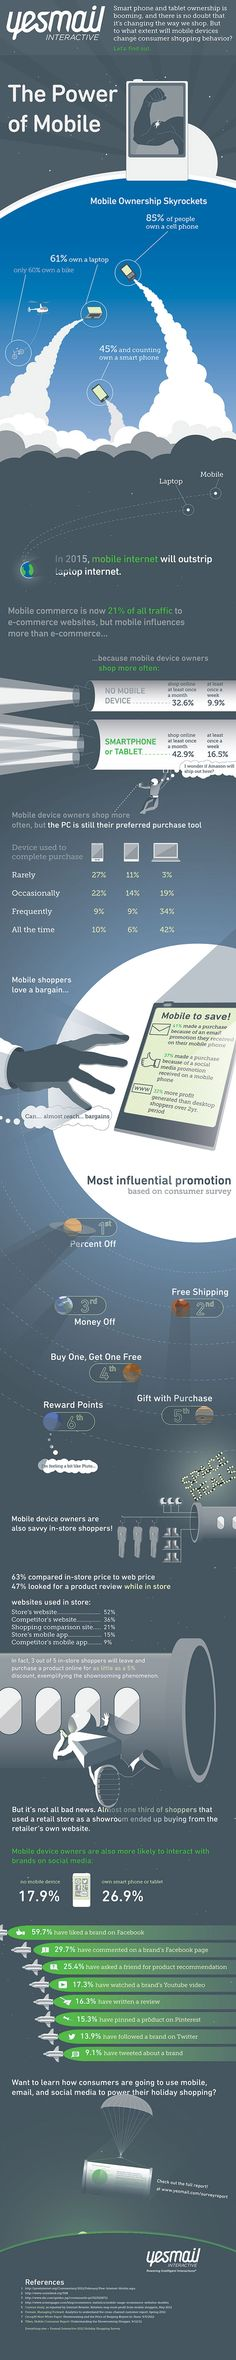 #Infographic - The power of mobile